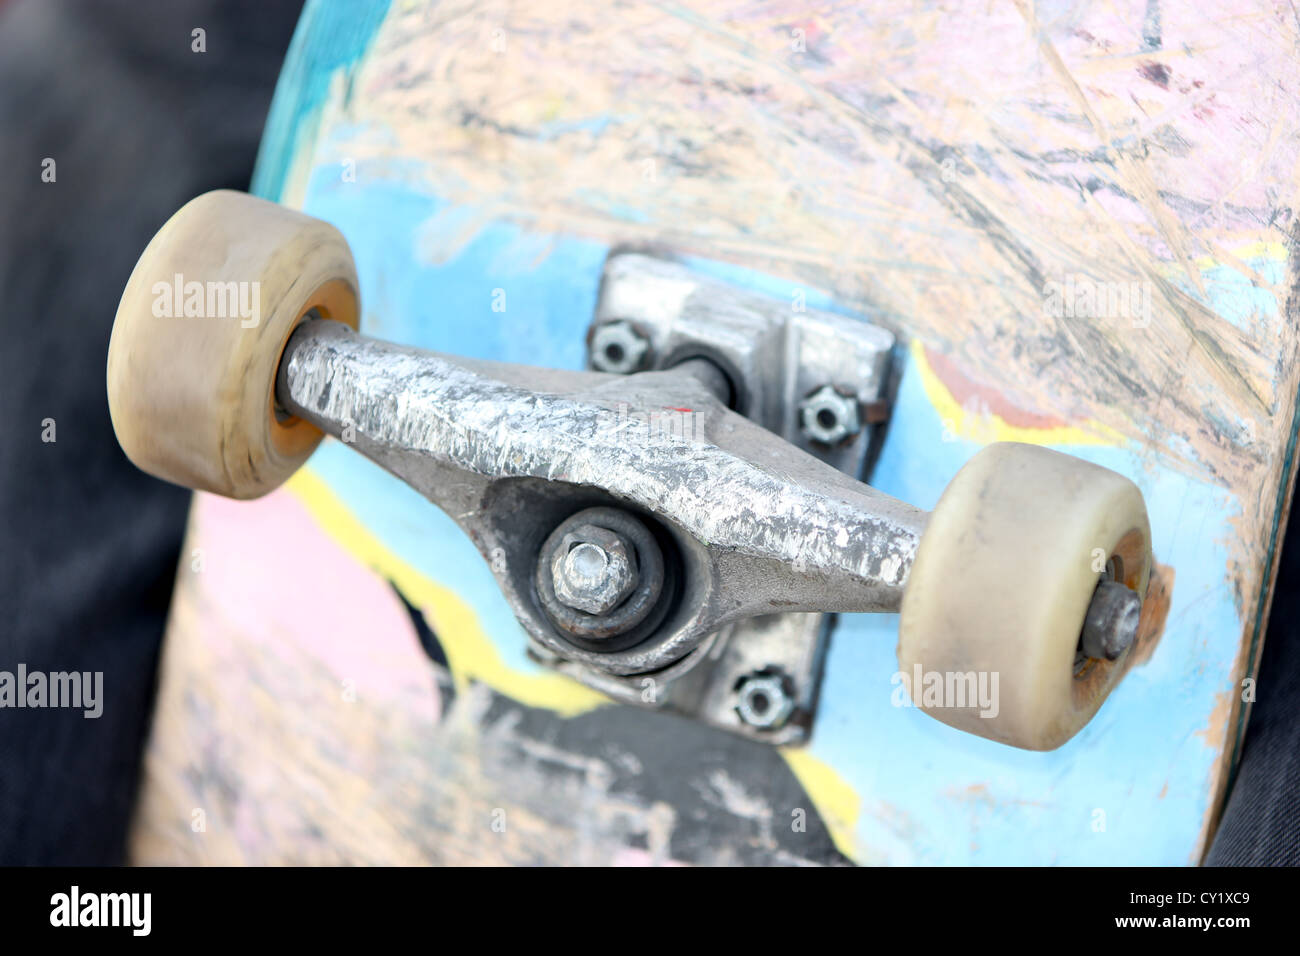 skateboard, outdoor, detail, photoarkive Stock Photo